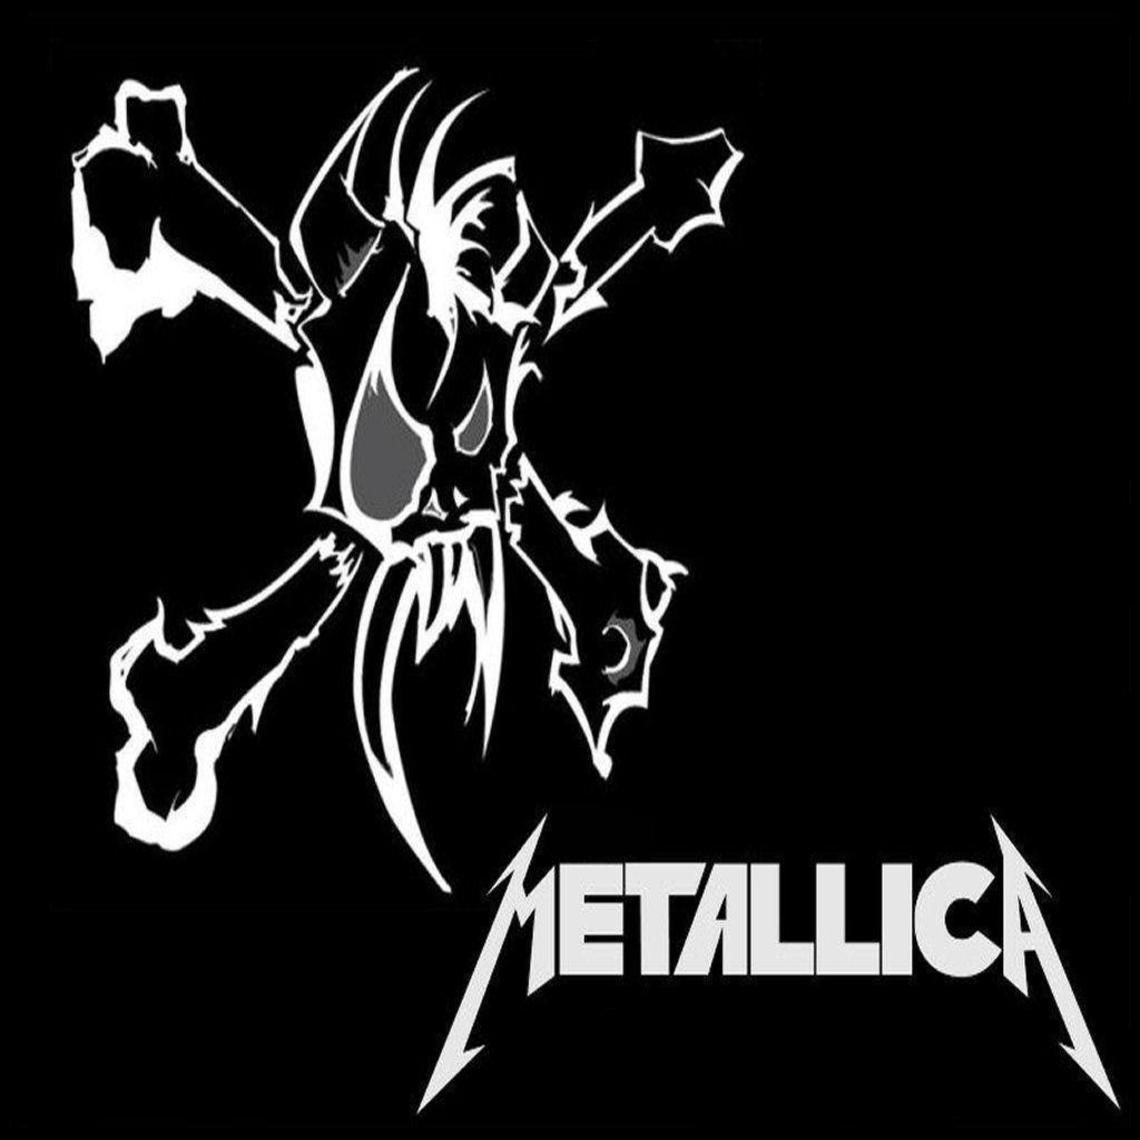 Wallpaper - Metallica, Metal Bands En